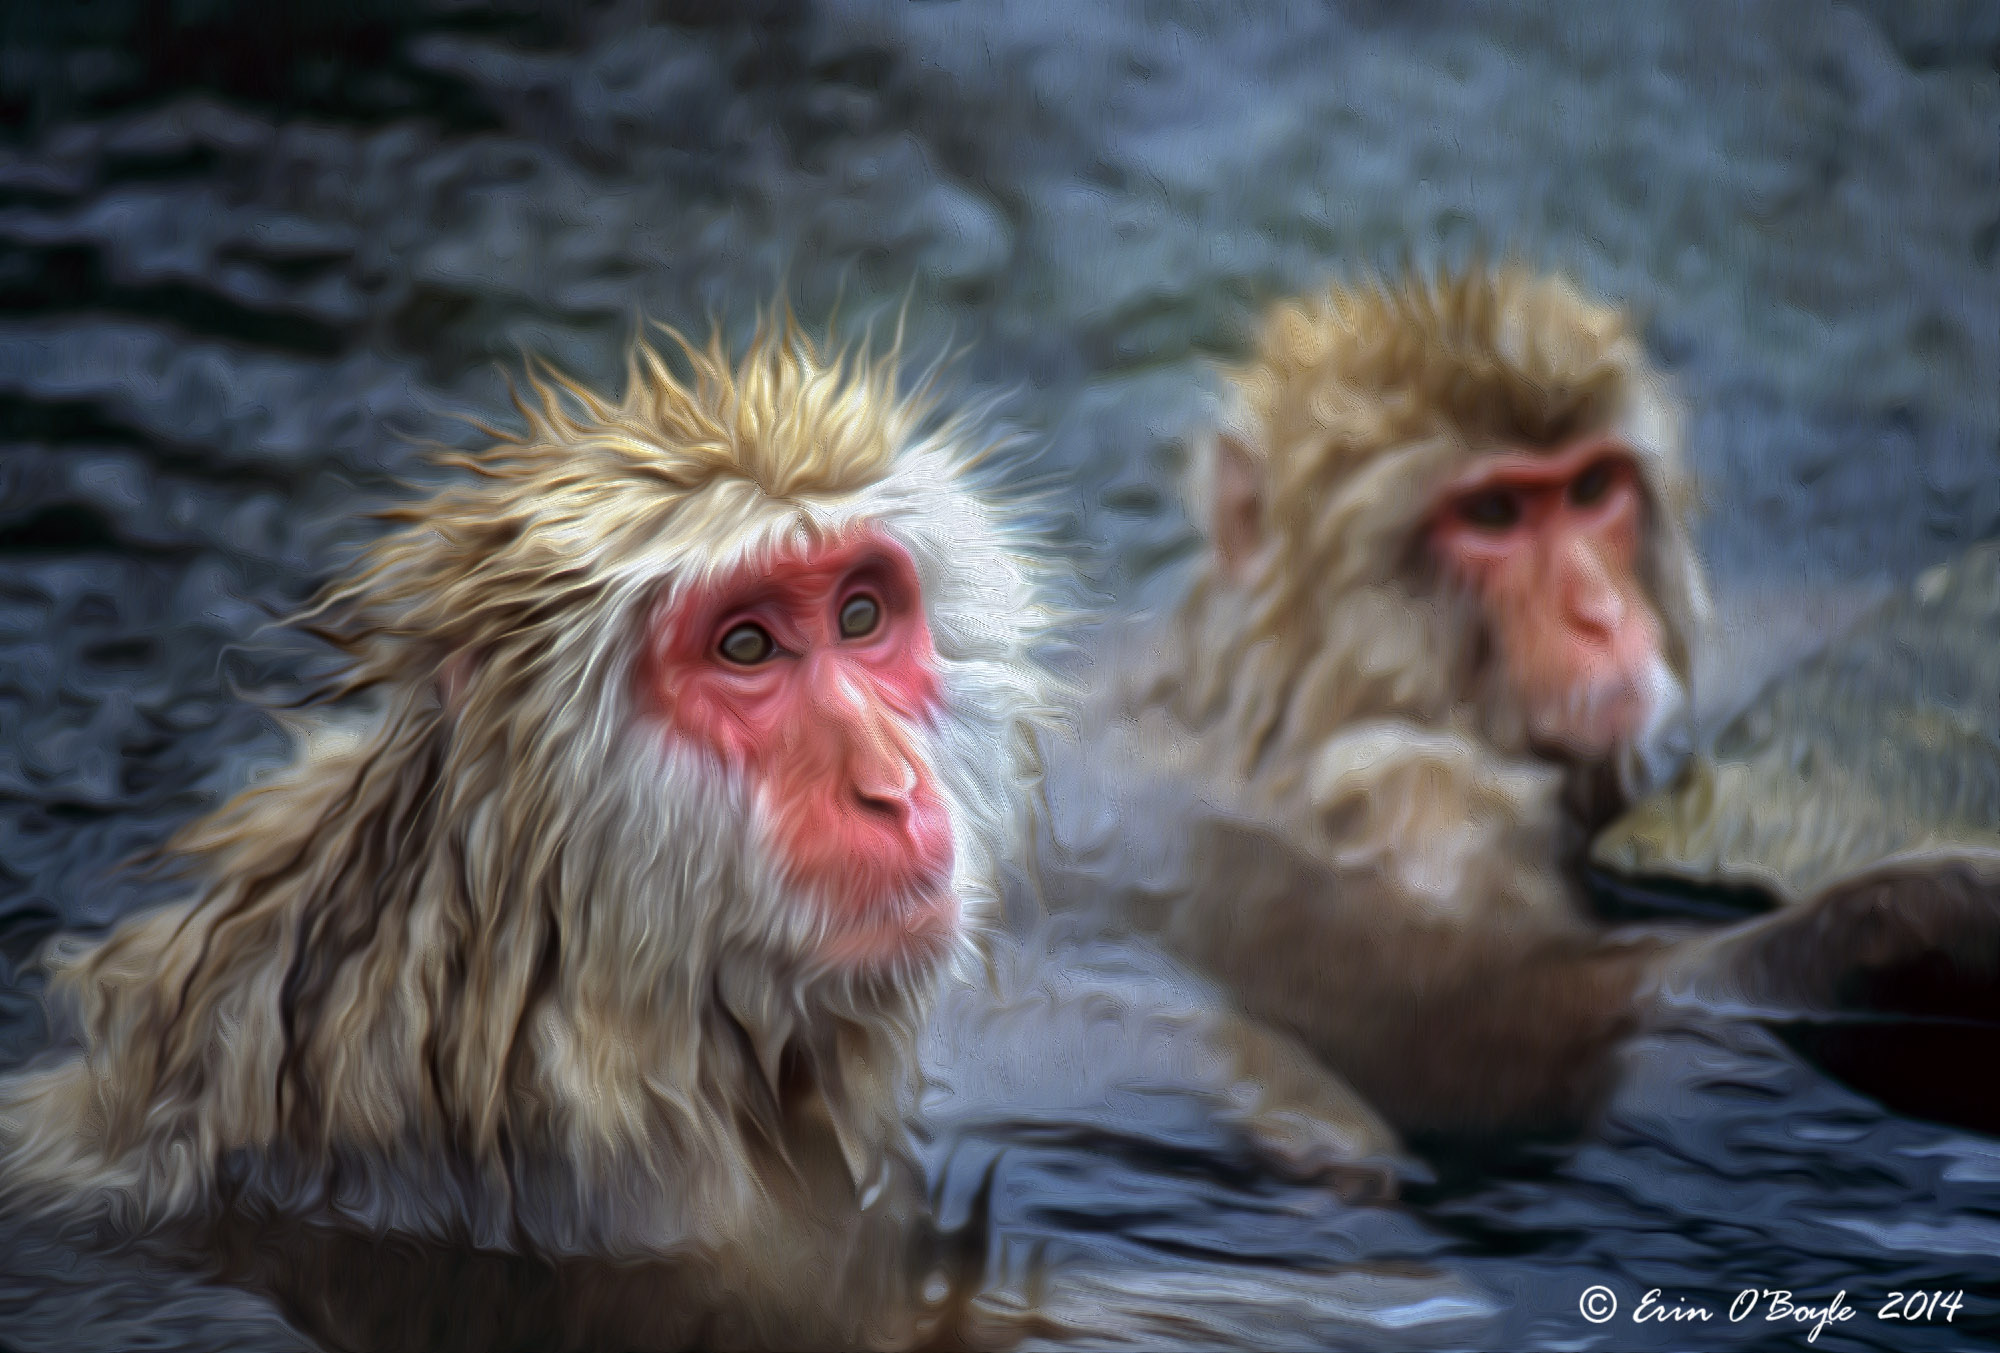 Snowmonkeys Interpreted